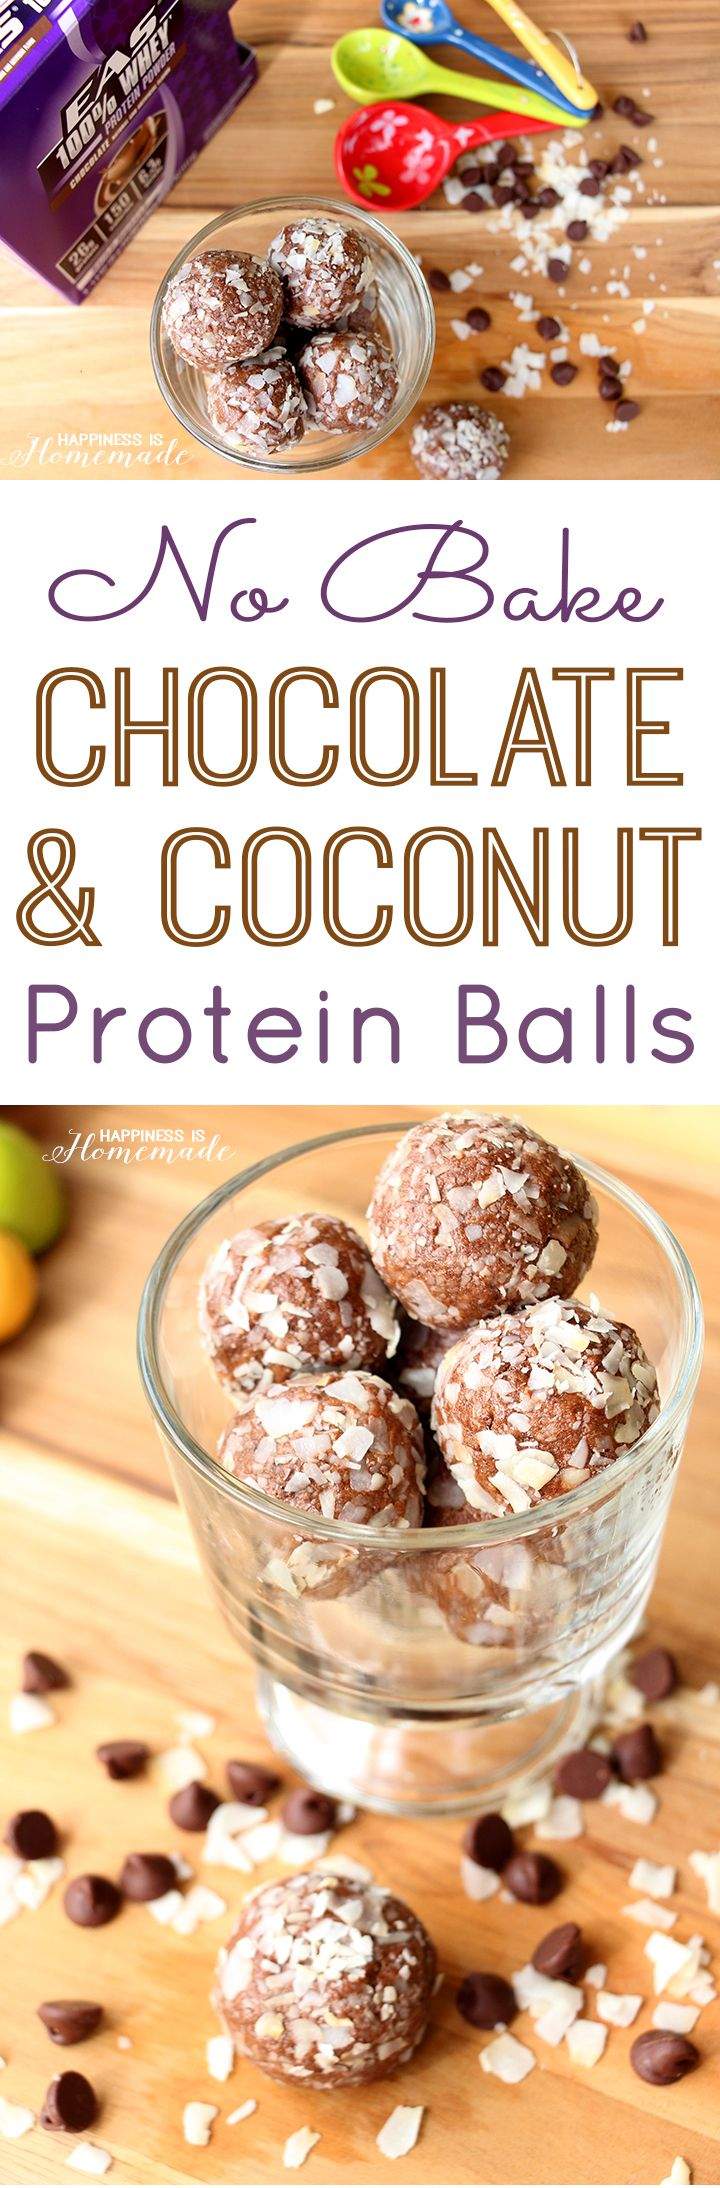 No Bake Chocolate Coconut Protein Balls Recipe - Happiness is Homemade #DoMoreWithProtein #ad